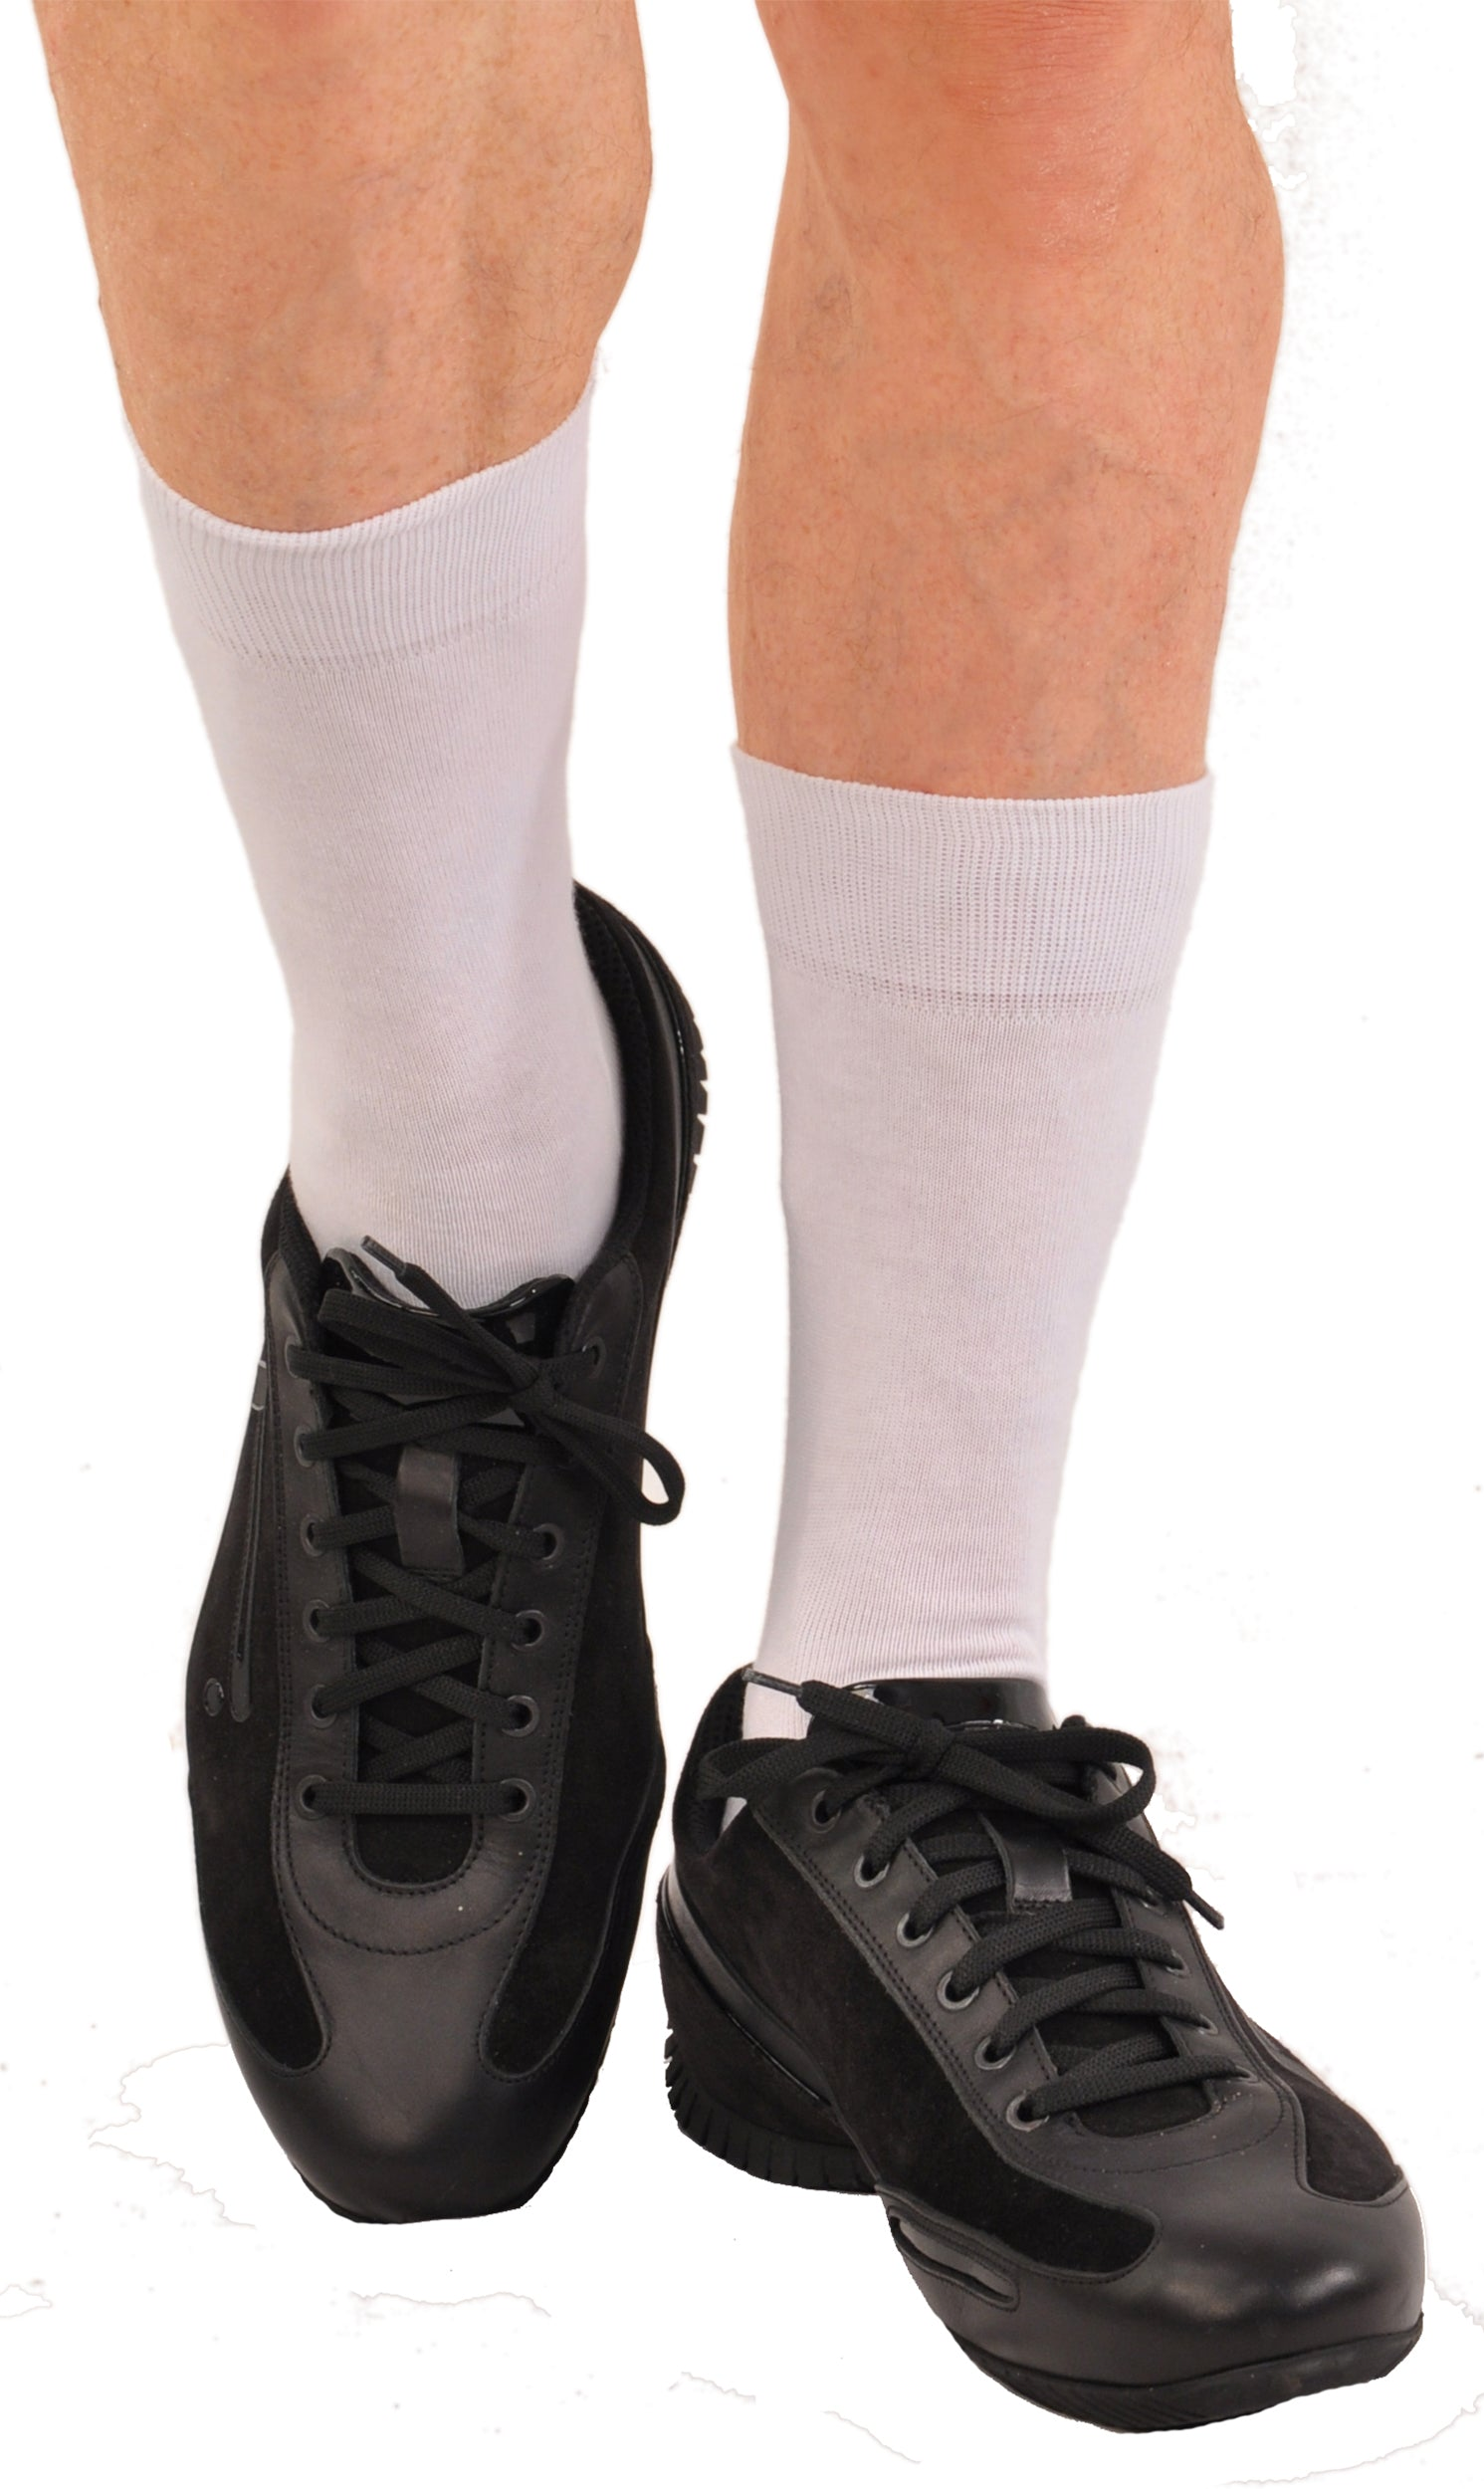 Men's Crew/Athletic/Sport Socks